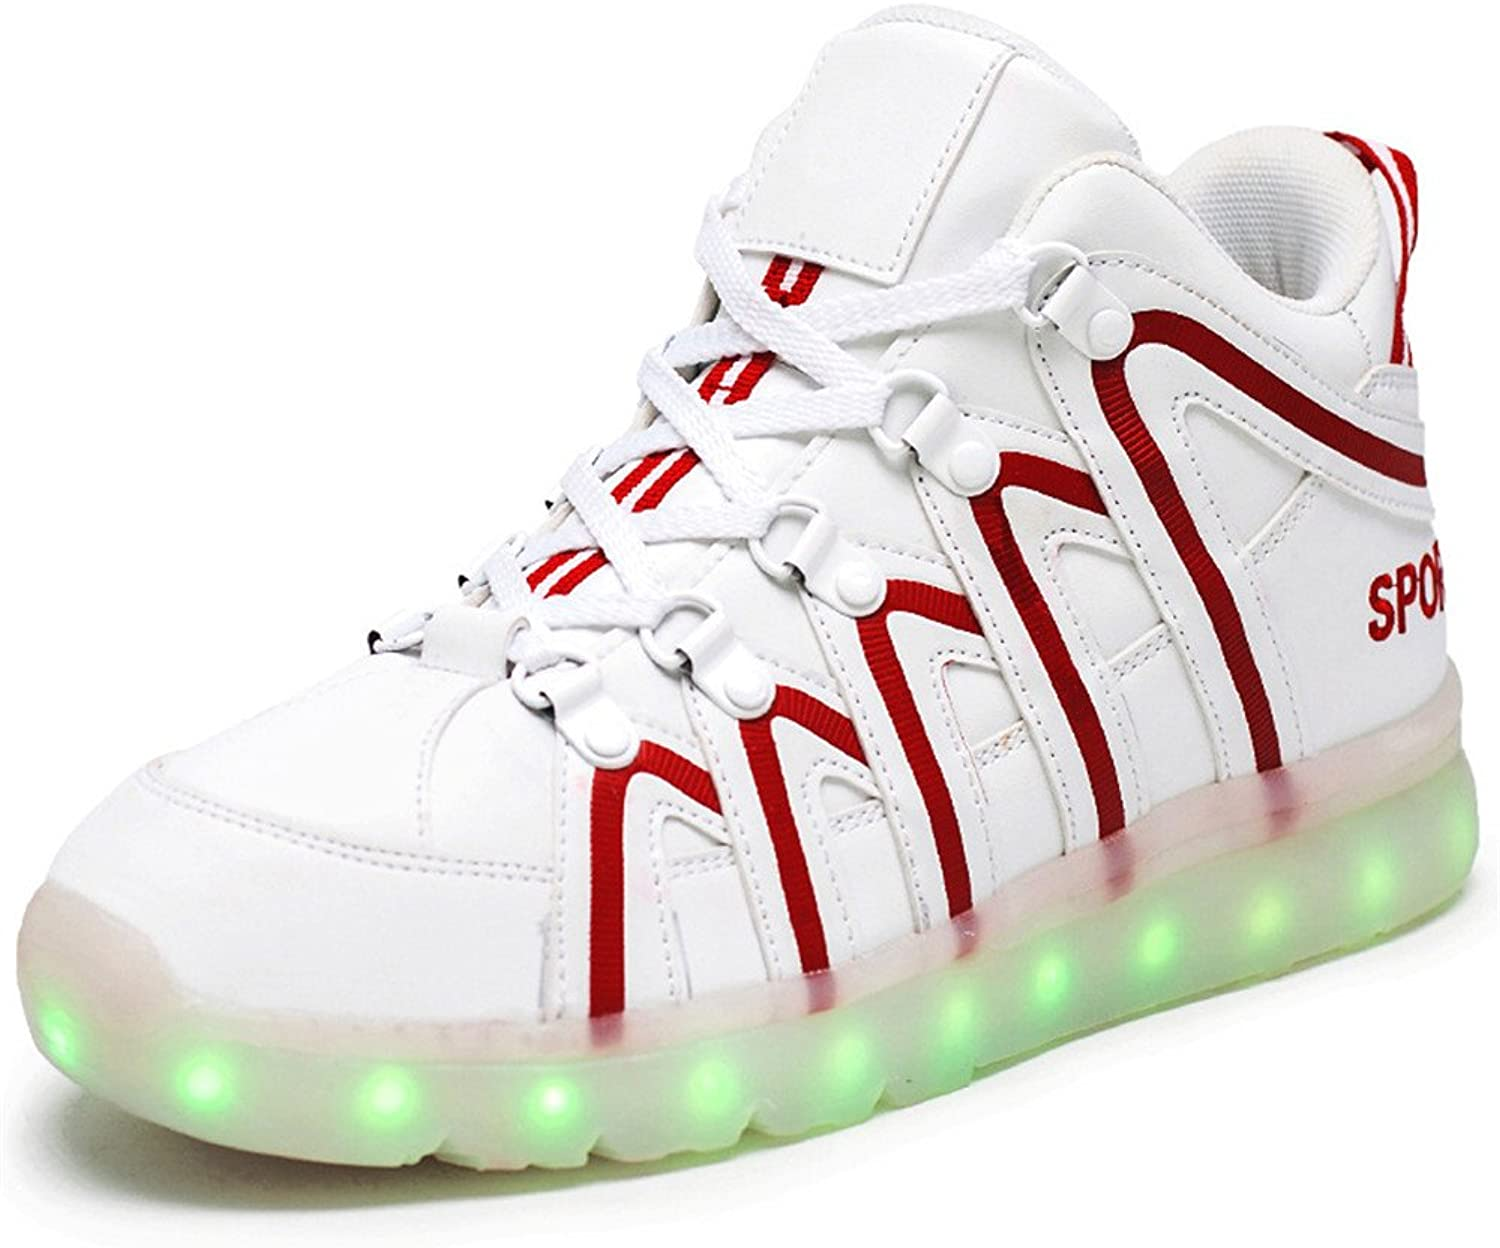 Hanglin Trade Women's Men's 7 colors Light USB Charging LED Light-Up Sport shoes Flashing Sneakers